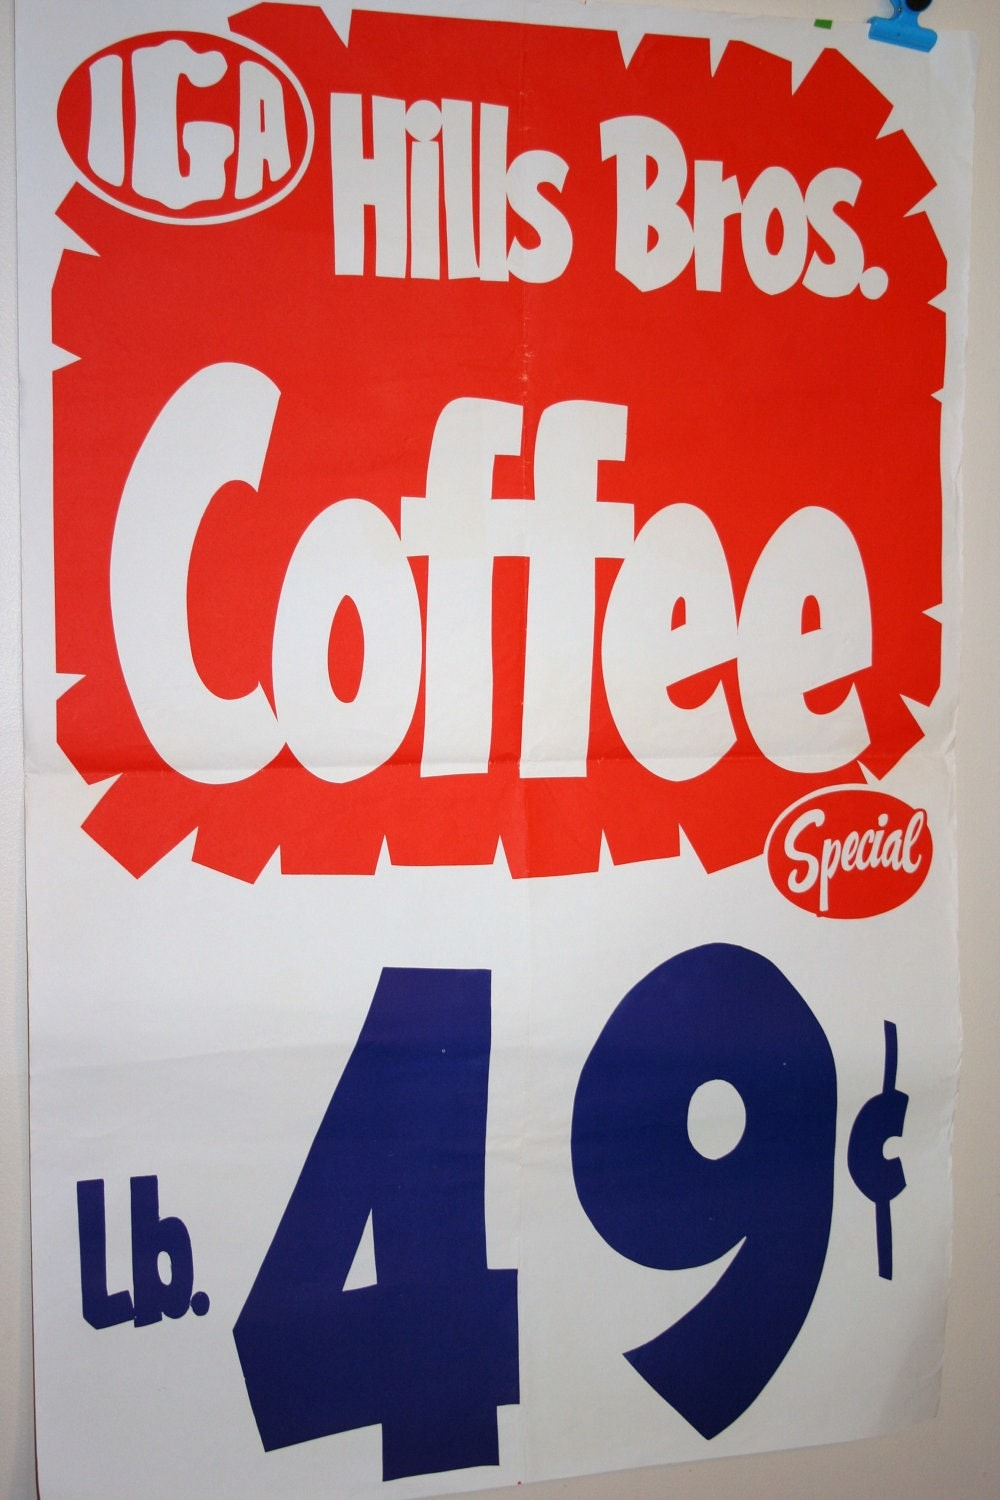 Vintage 1960s Iga Hills Bros Coffee Grocery Store Poster